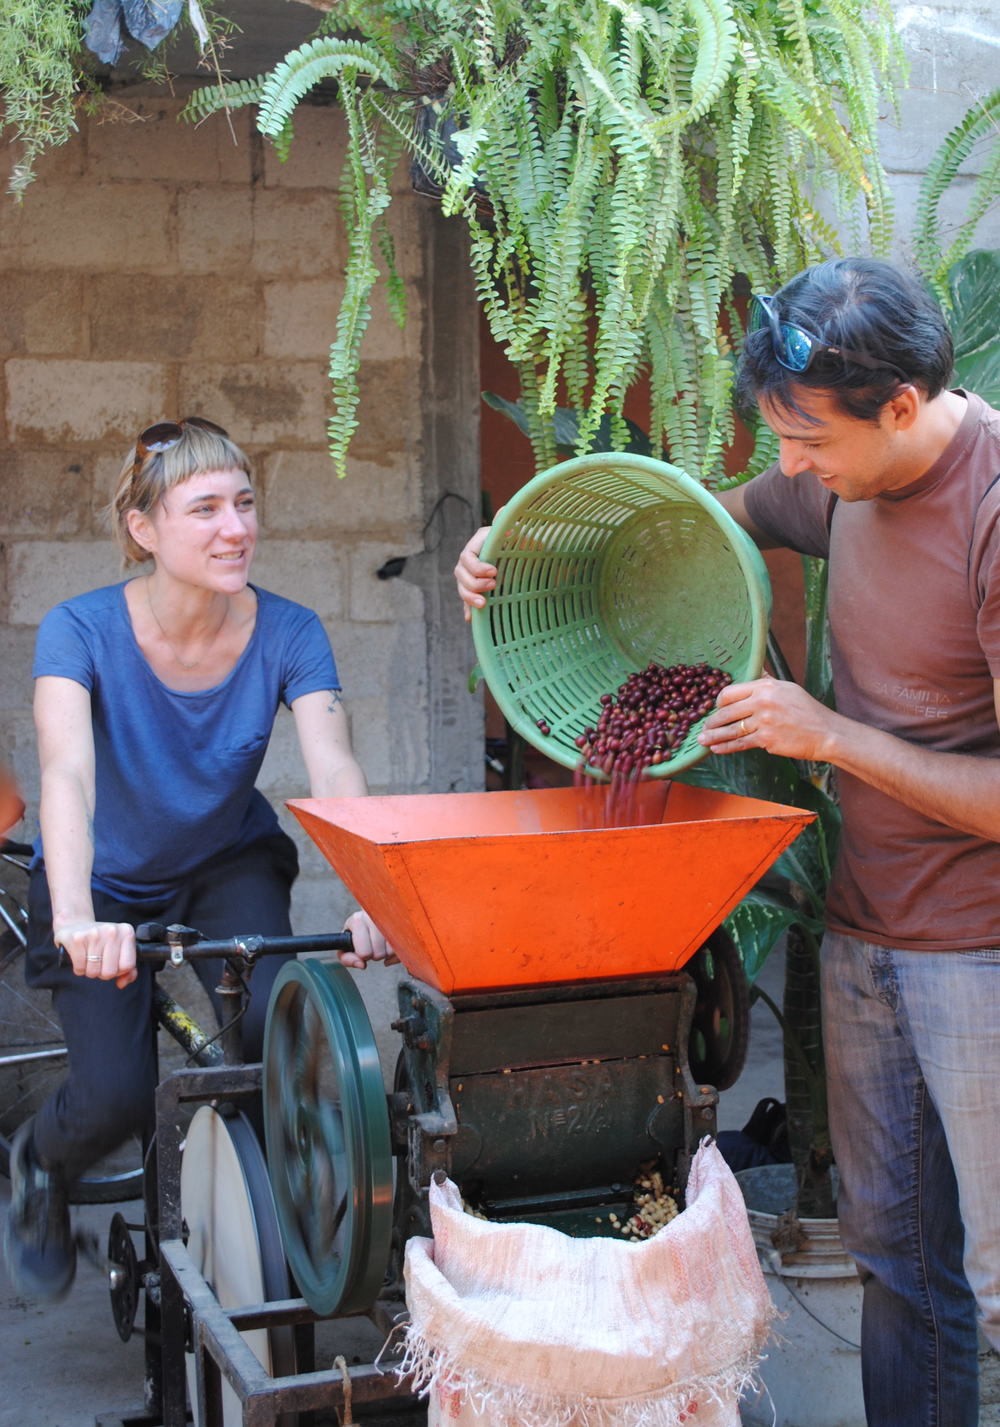 Grand Central Bakery's Jess Tannenbaum and Nossa Familia owner & founder Augusto Carneiro try out a bicycle coffee mill in Guatemala.